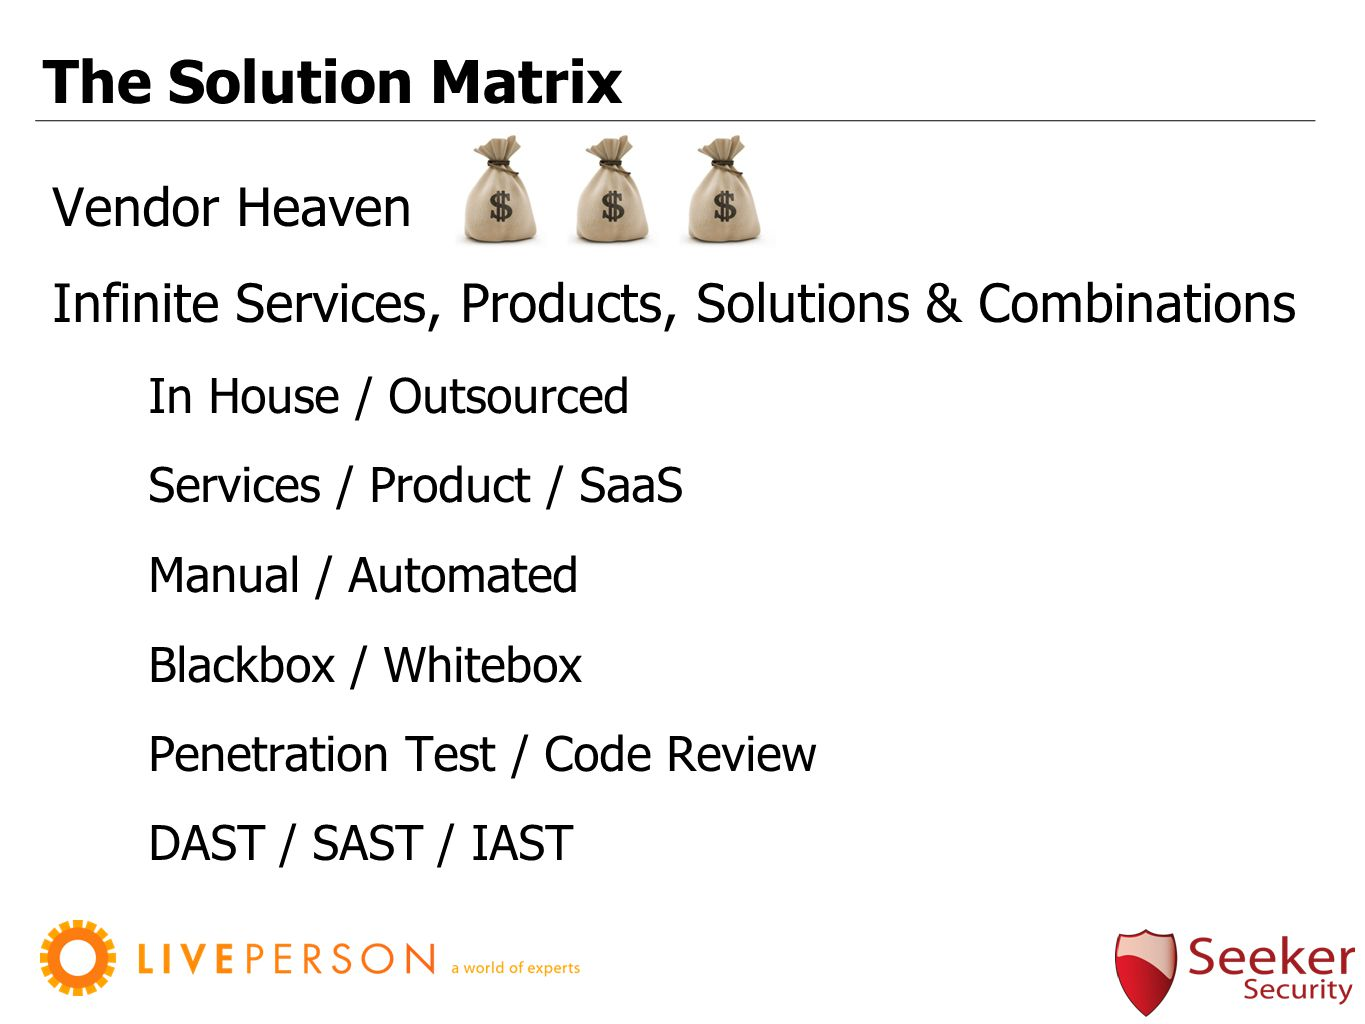 The Solution Matrix Vendor Heaven Infinite Services, Products, Solutions & Combinations In House / Outsourced Services / Product / SaaS Manual / Automated Blackbox / Whitebox Penetration Test / Code Review DAST / SAST / IAST